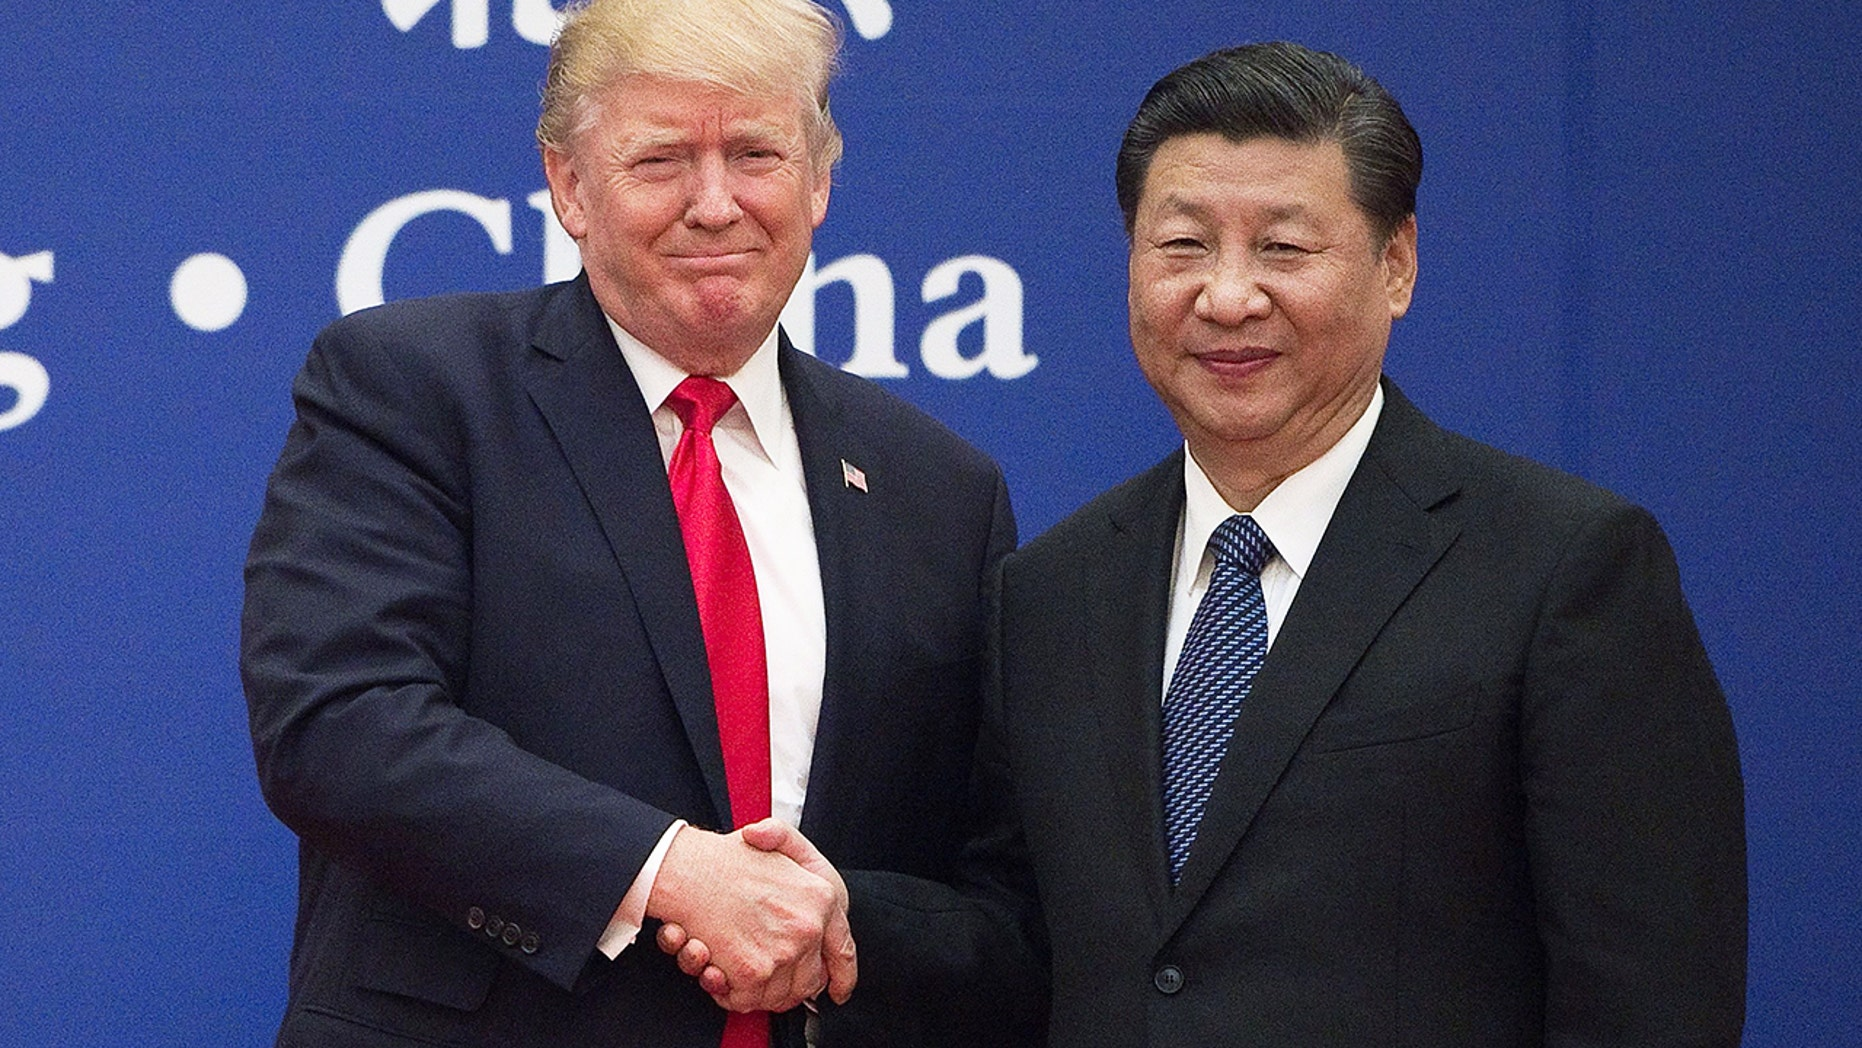 FILE: President Donald Trump and China's President Xi Jinping shake hands during a business leaders event at the Great Hall of the People in Beijing. (Getty)